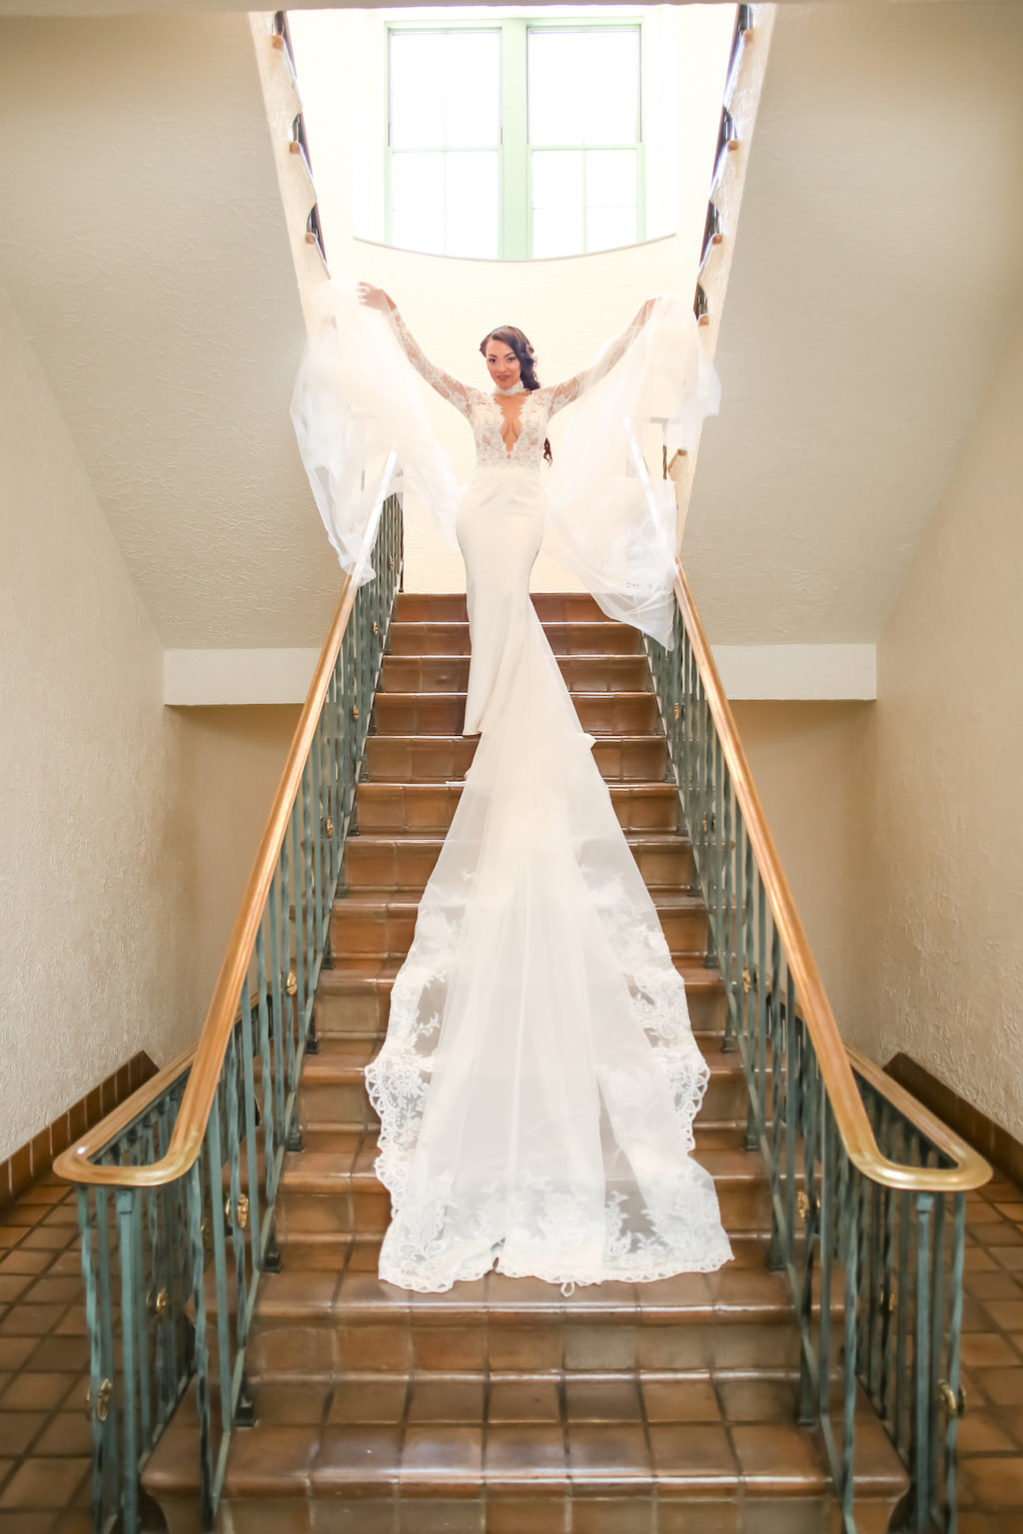 Bridal Portrait on Staircase, Lace and Sheer Long Sleeve Low V-Neck Wedding Dress with Long Train and Veil, Braided Hairstyle | St. Petersburg Photographer Lifelong Photography Studios